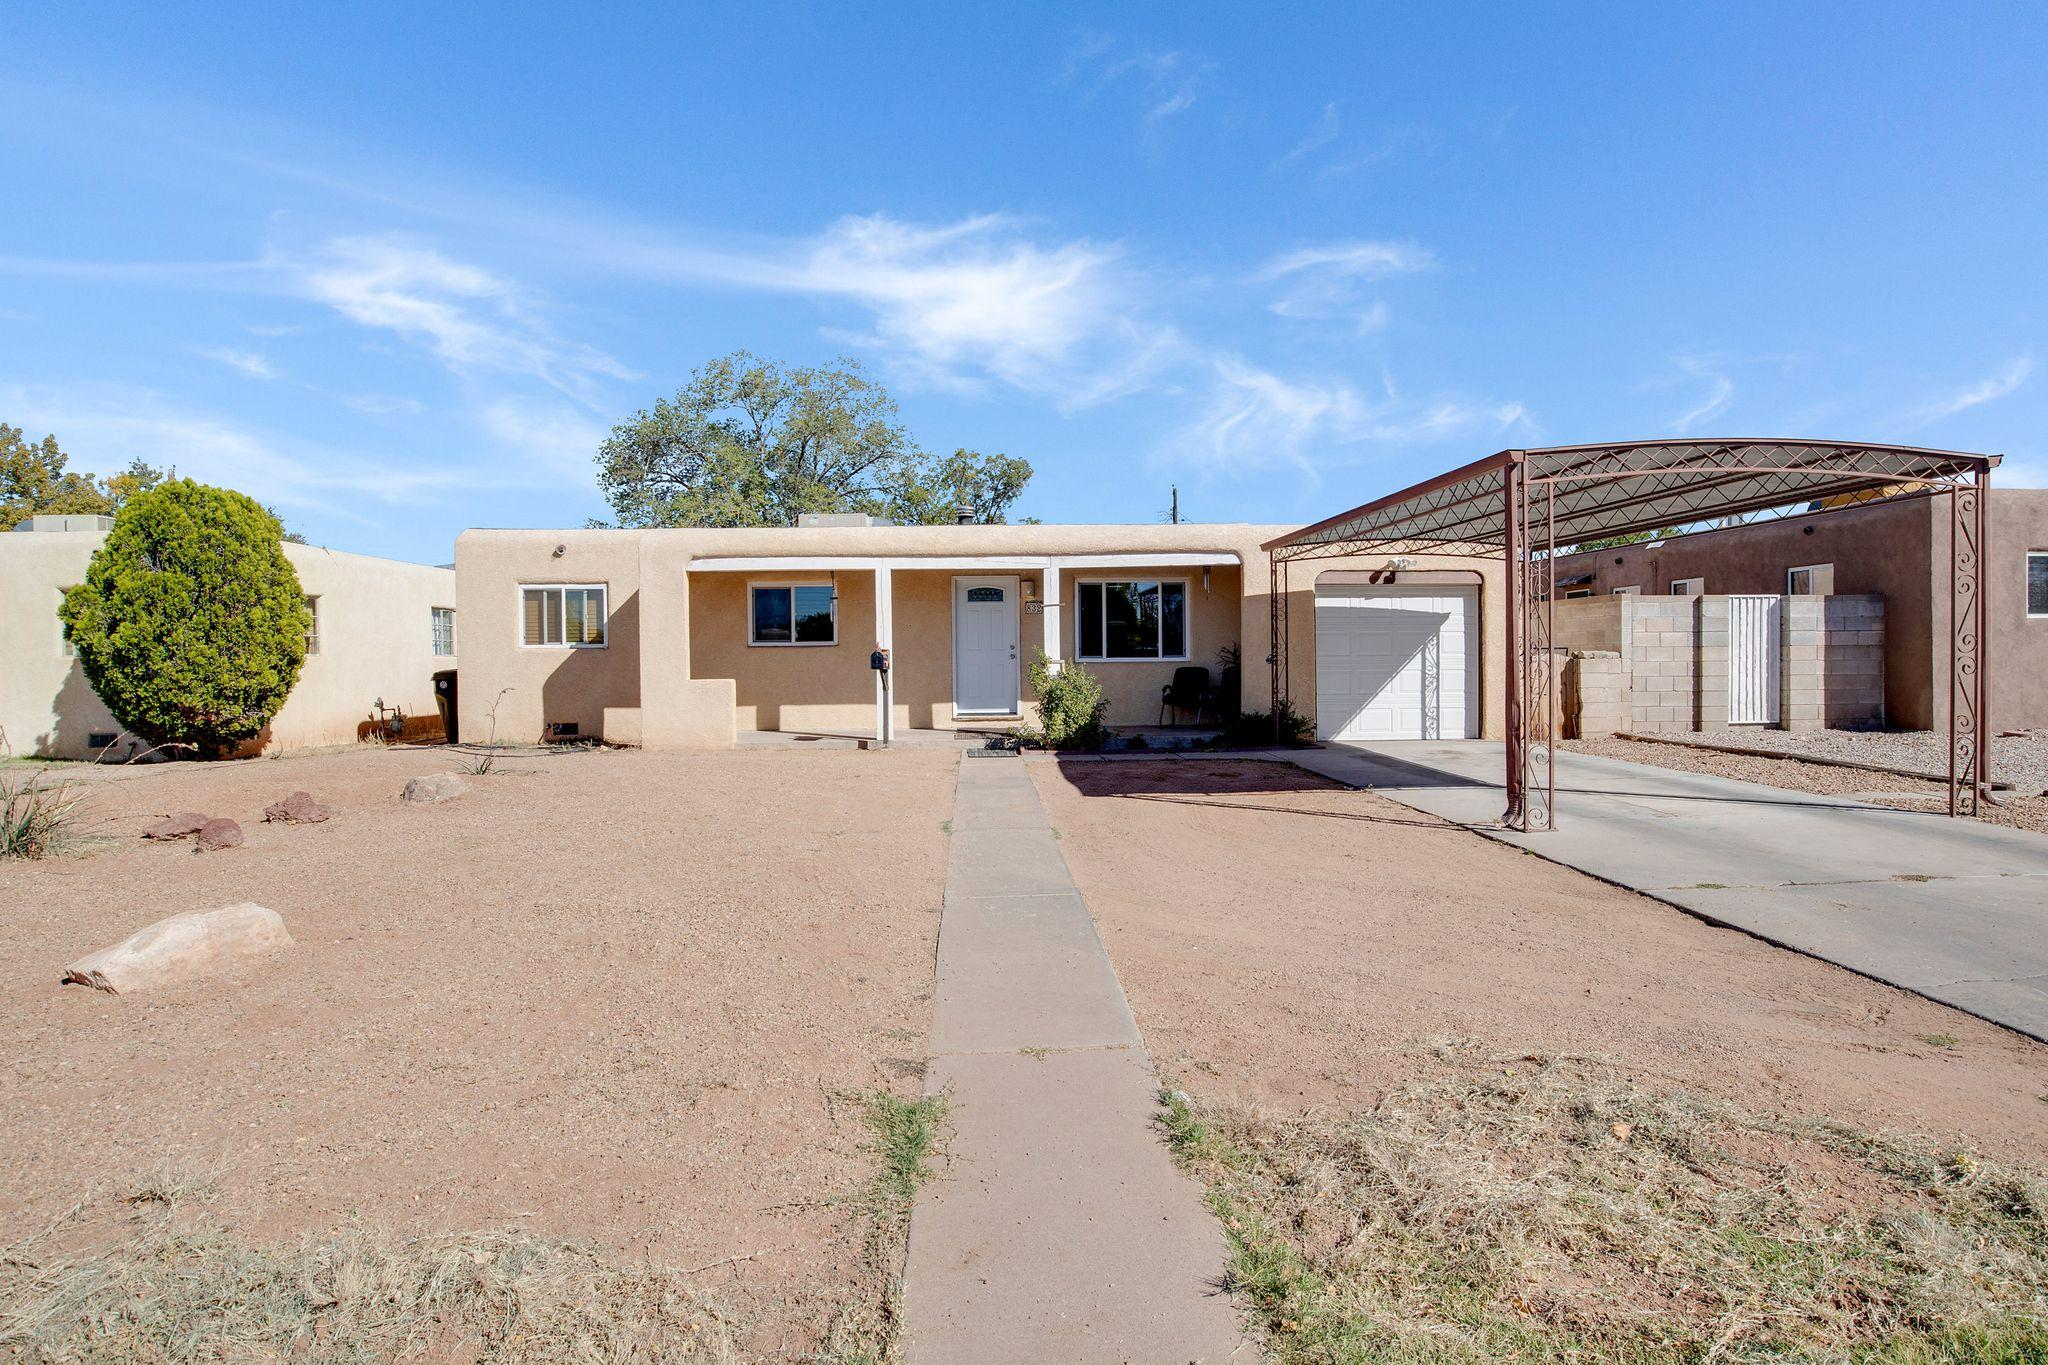 Home SWEET HOME! Updated, Charming, Spacious, open and light-filled! Kitchen has been opened up to the living room and dinning room.  Large living room, 4 bedroom, 2 bath, lovingly maintained. Large private backyard is walled and has endless possibilities, Clean and move-in ready.  Come see!!!